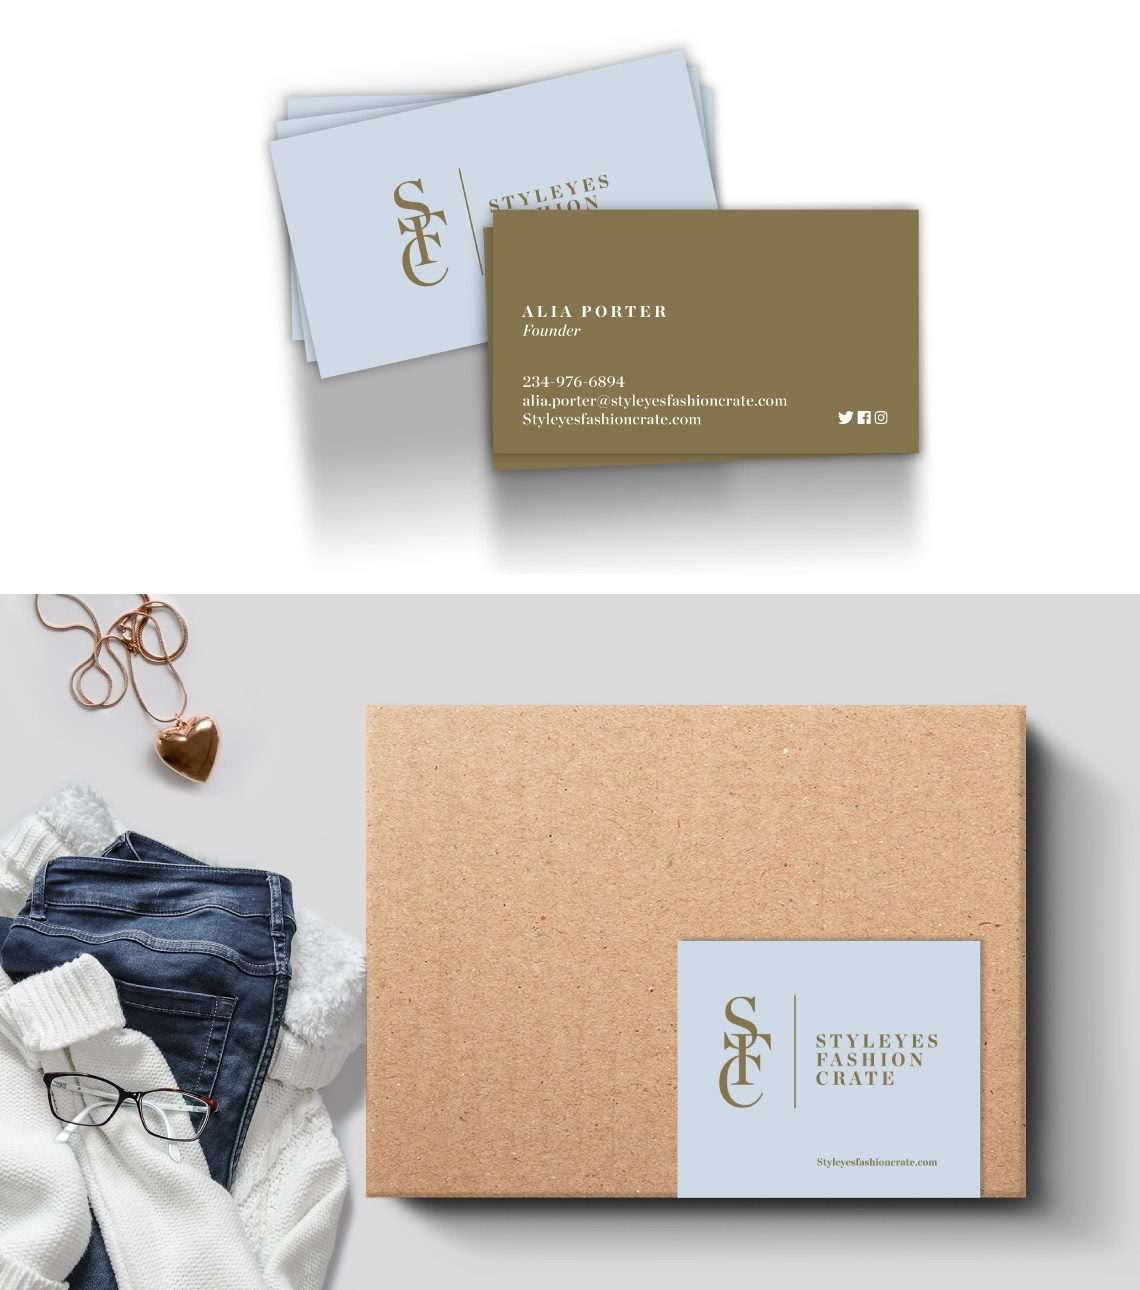 Styleyes business cards and crate package design